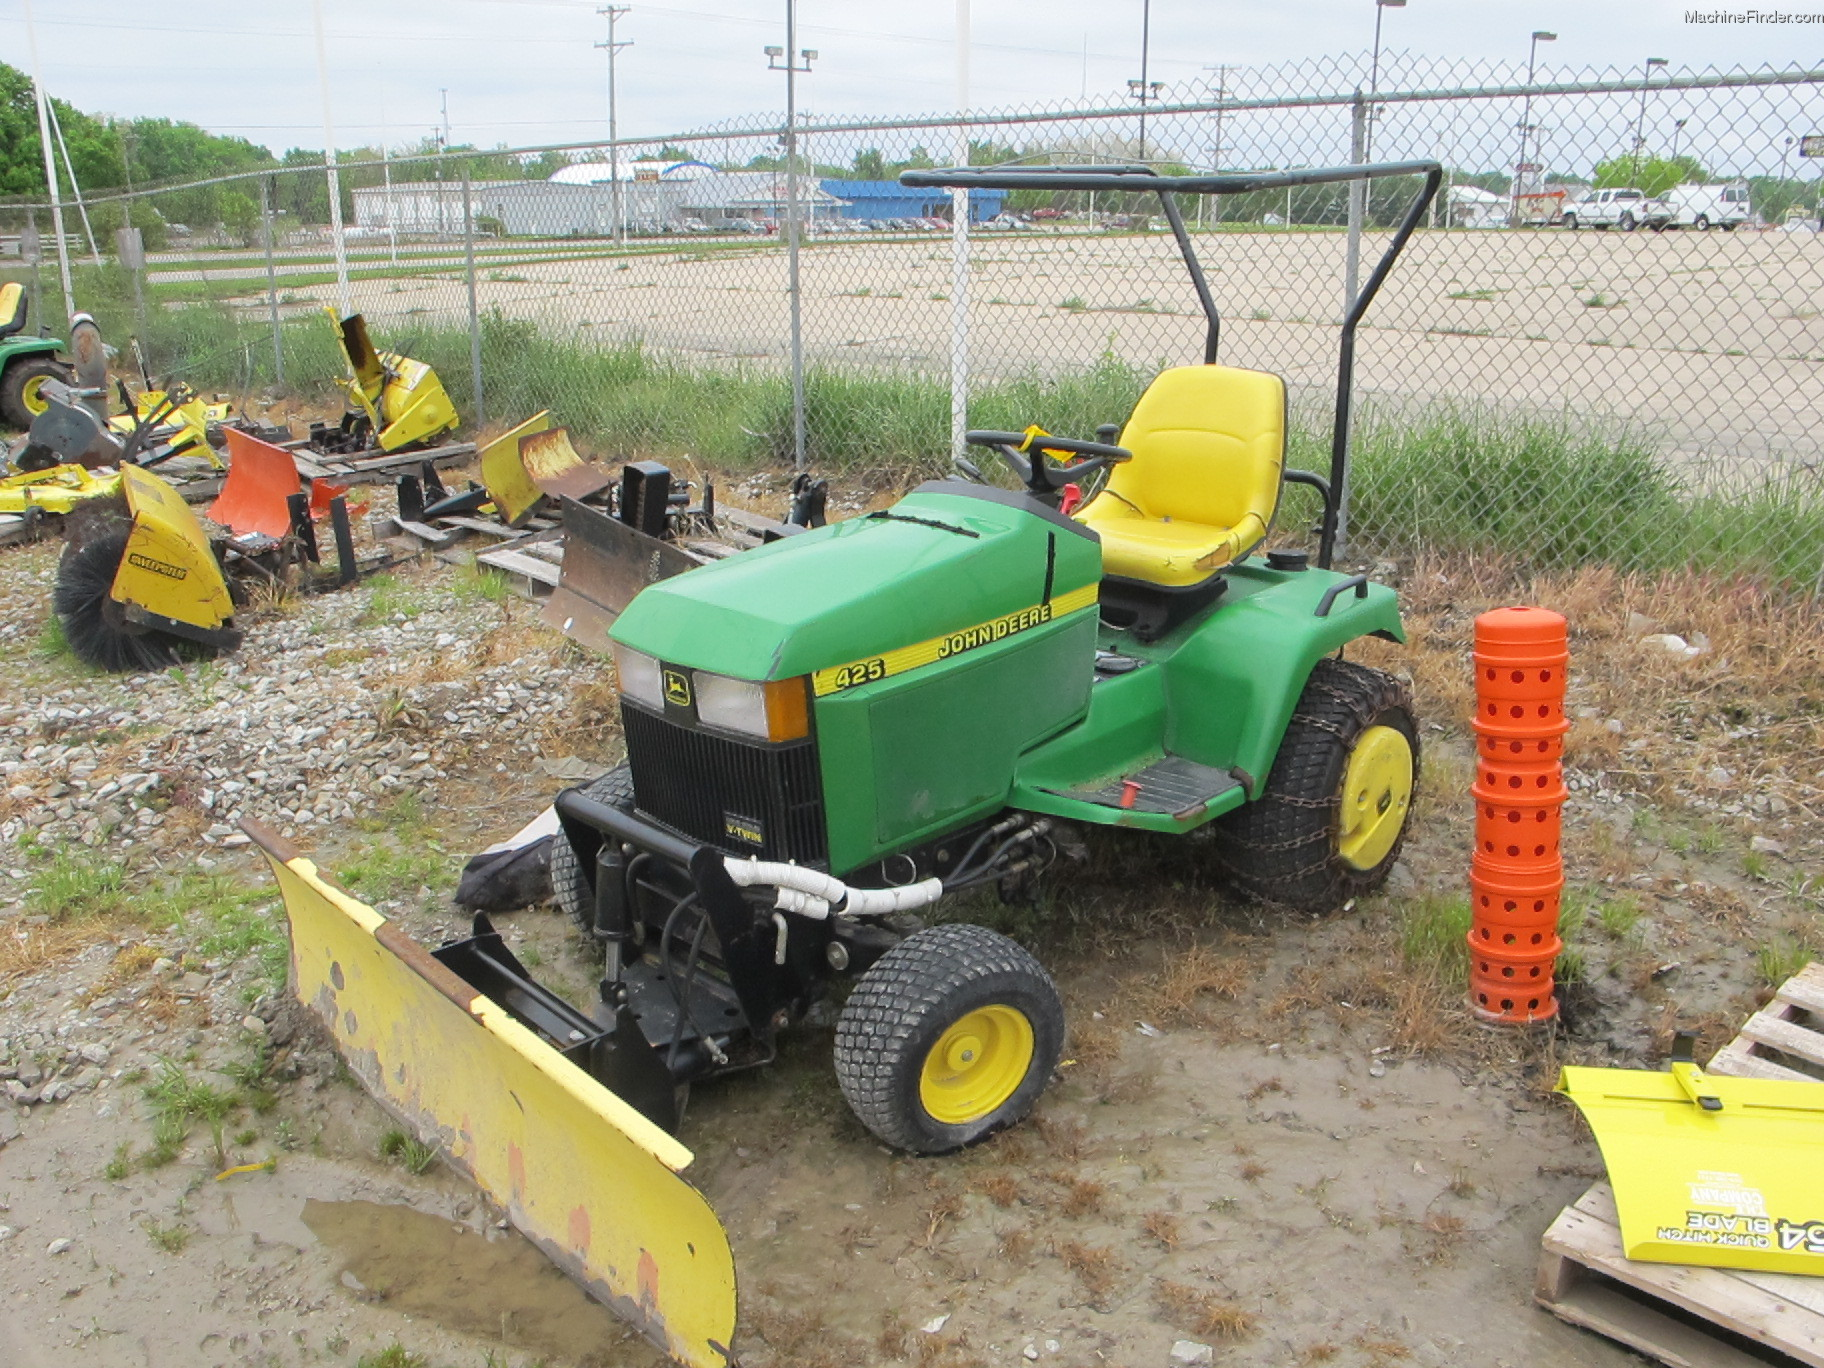 John Deere 415 425 445 455 Front End Loader on john deere 455 front end loader